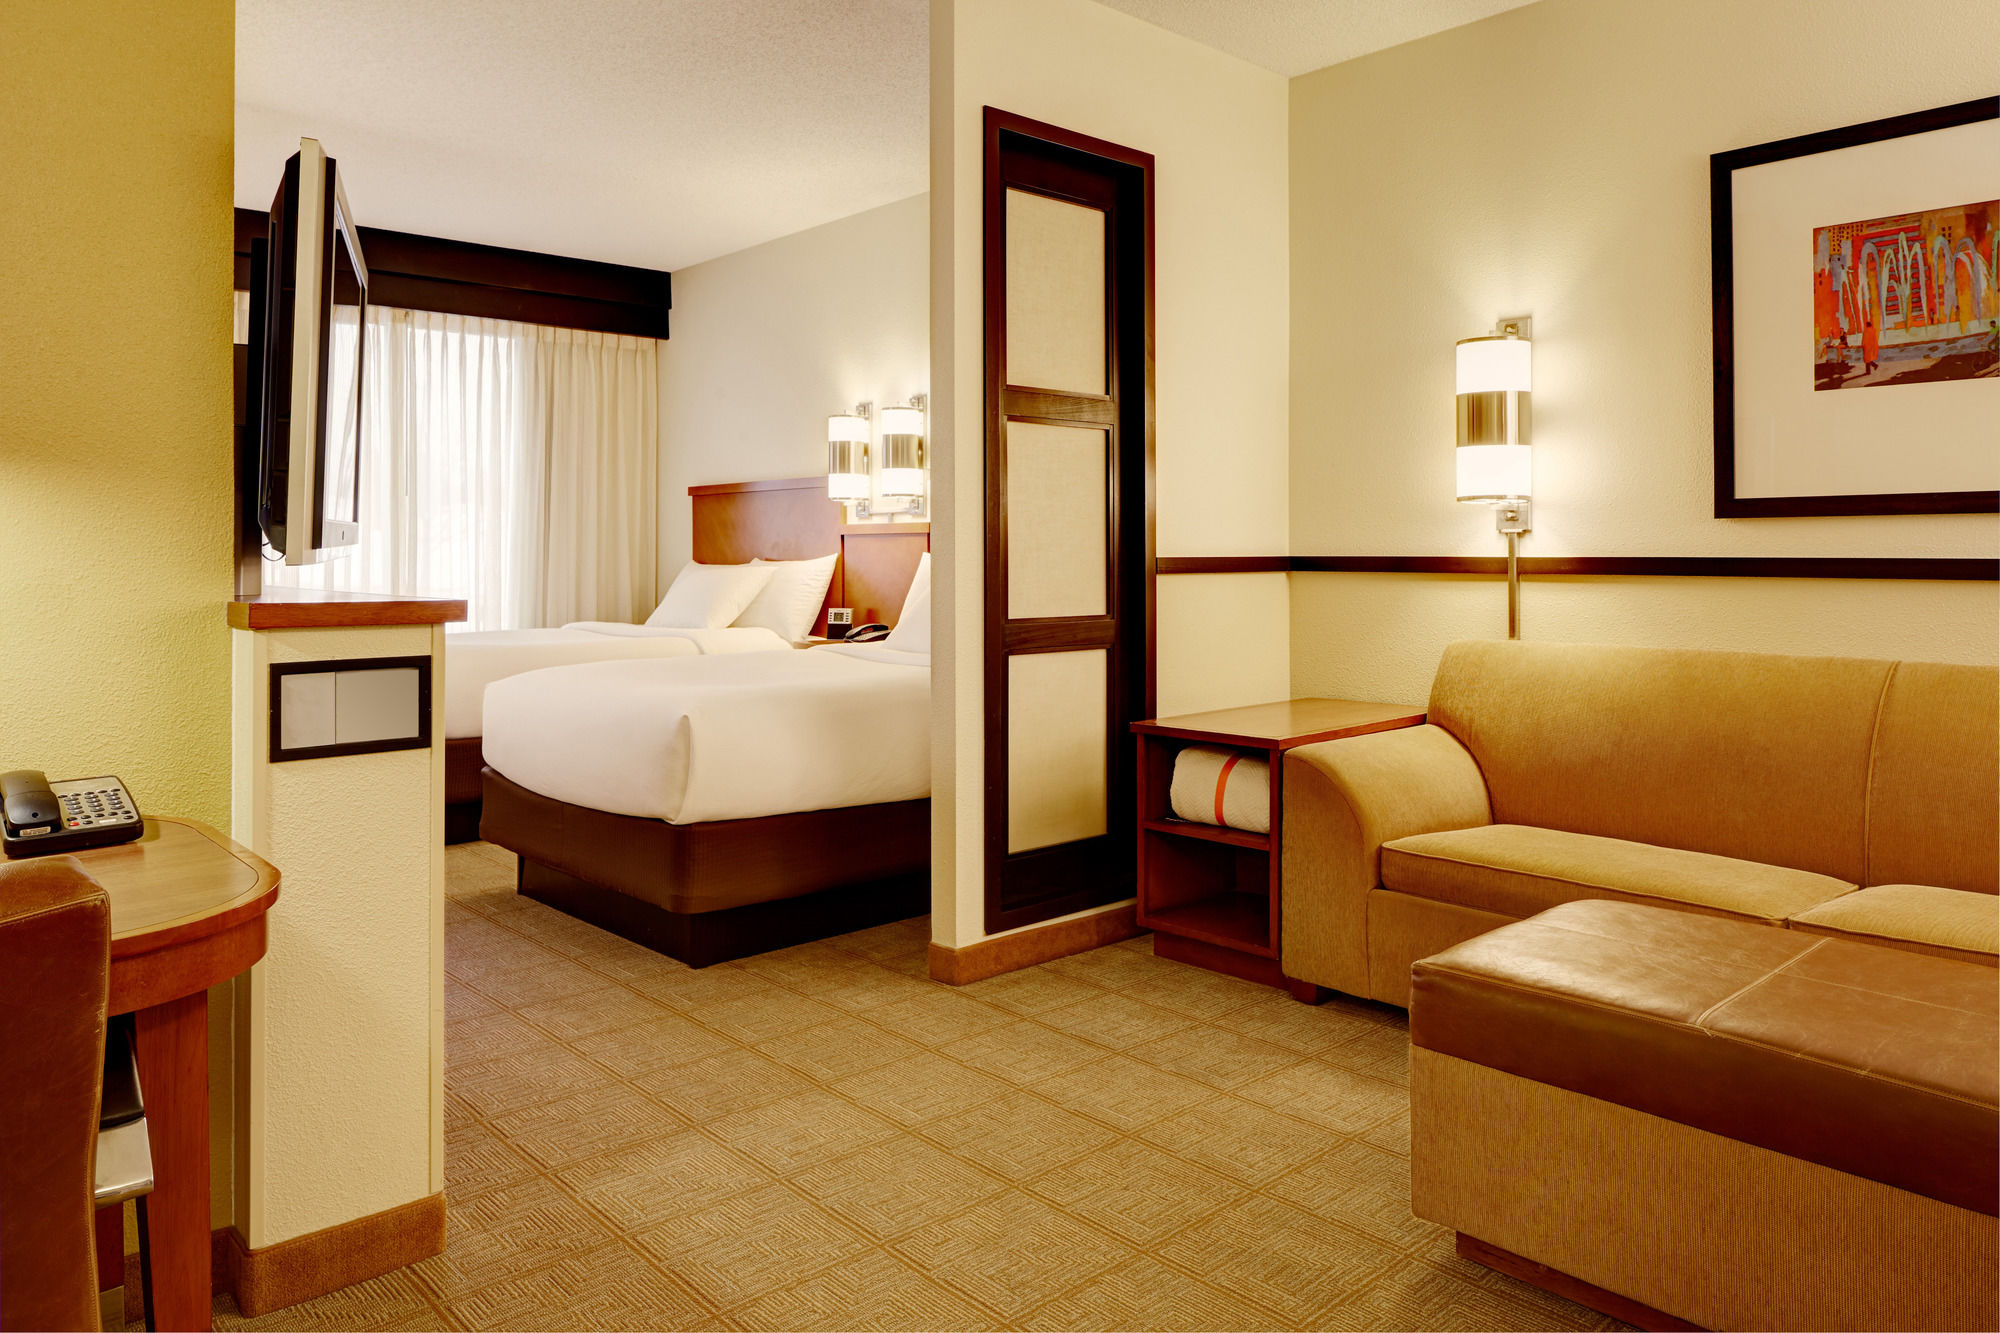 Schaumburg Hotel Coupons for Schaumburg, Illinois - FreeHotelCoupons.com